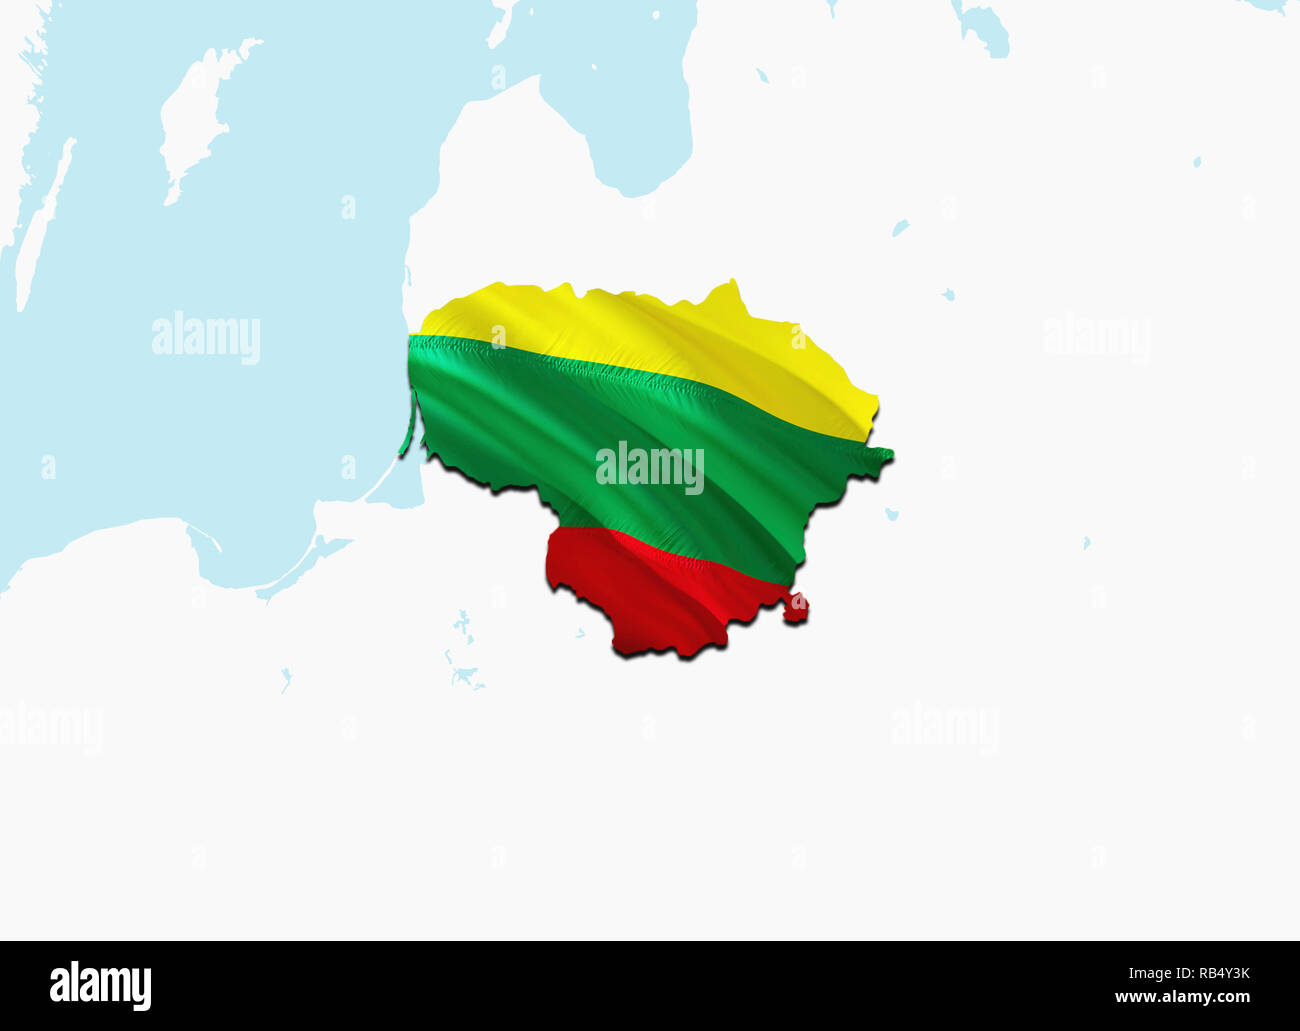 Flag Map of Lithuania  3D rendering Lithuania map and flag  The